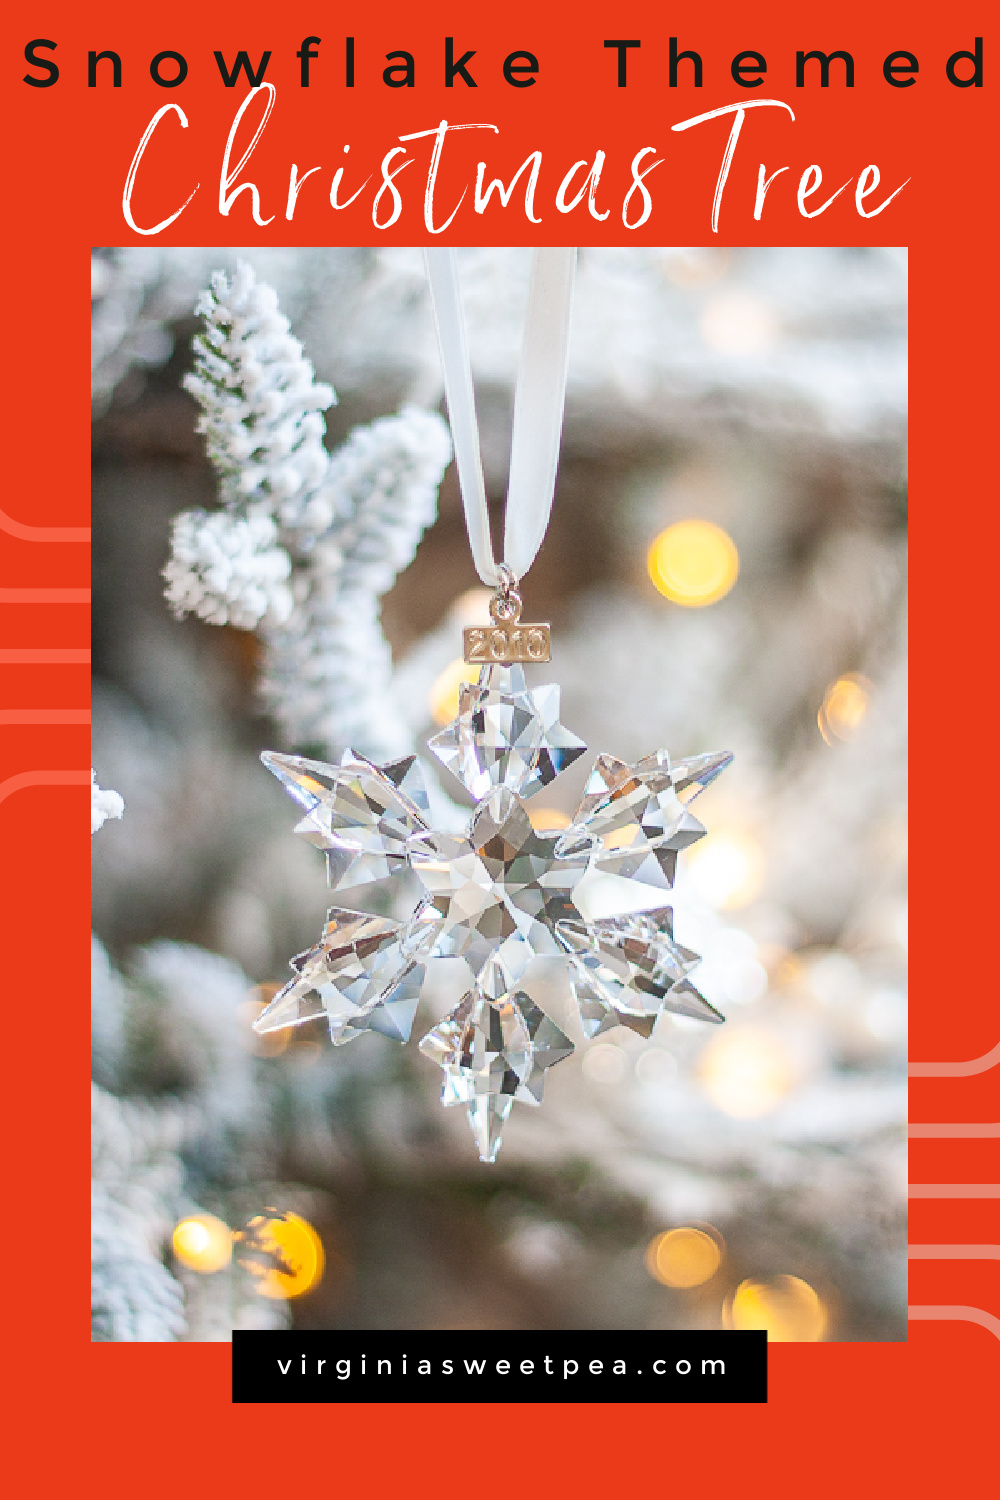 Snowflake Themed Christmas Tree - See a flocked Christmas tree decorated with a snowflake theme featuring Swarovski crystal snowflake ornaments collected for 26 years.  You'll also see 25+ other Christmas trees decorated by talented home decor bloggers.  You are sure to be inspired! via @spaula